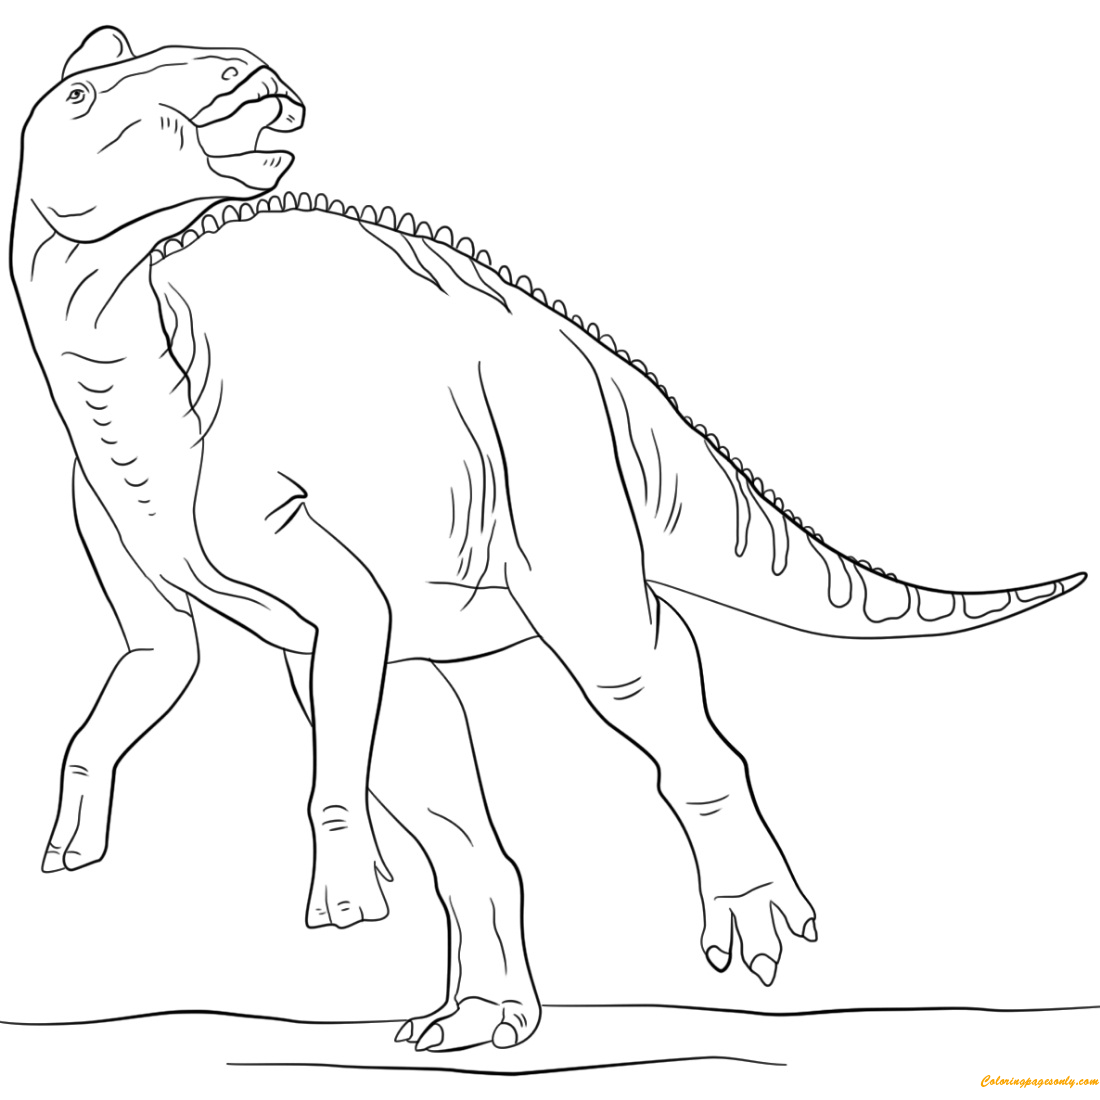 Jurassic Edmontosaurus Coloring Pages Dinosaurs Coloring Pages Free Printable Coloring Pages Online